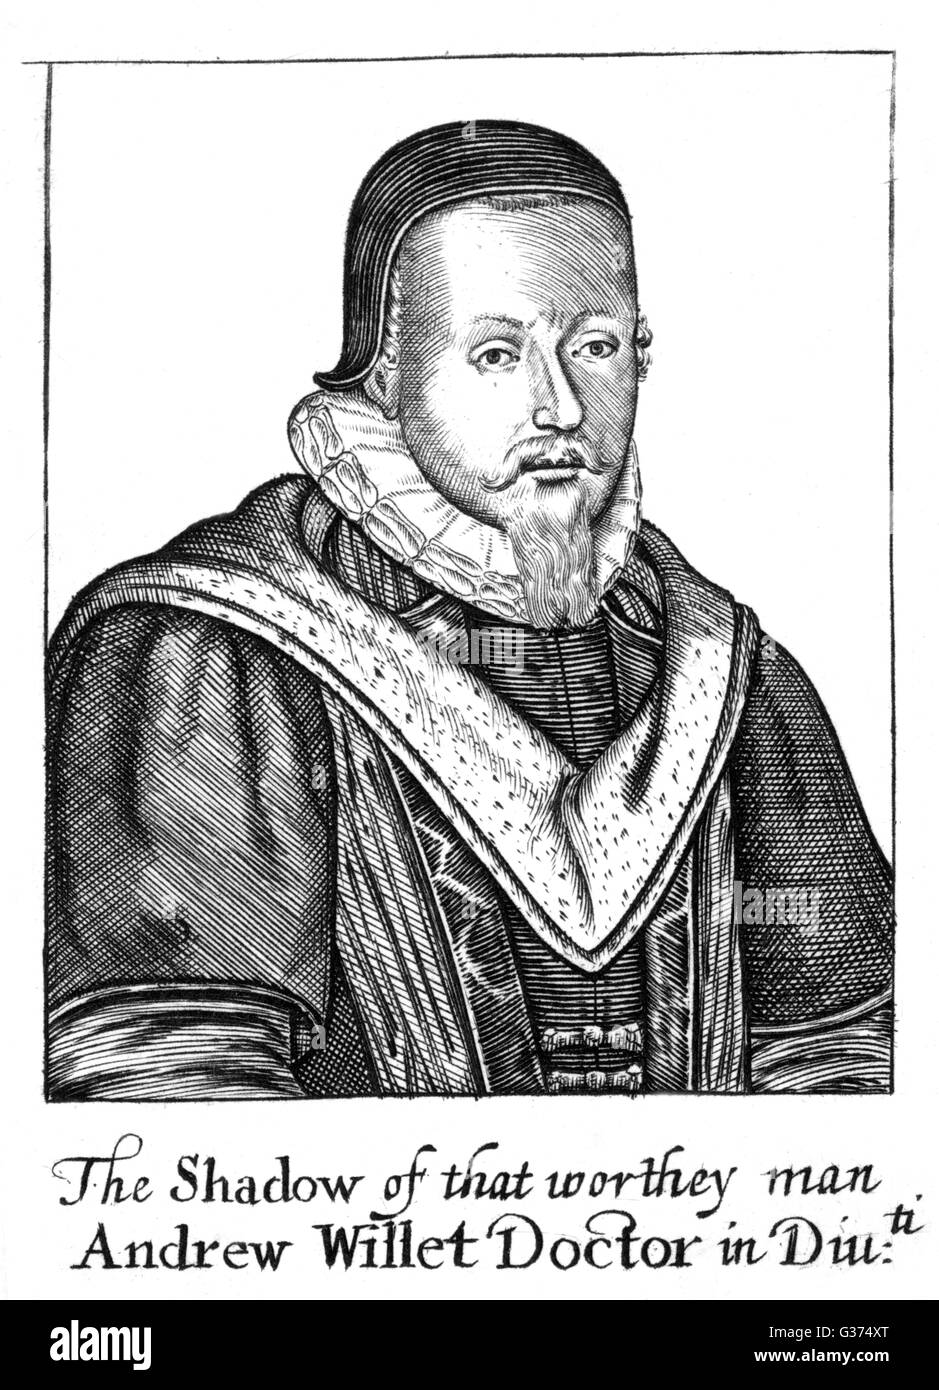 ANDREW WILLET controversial churchman         Date: 1562 - 1621 - Stock Image